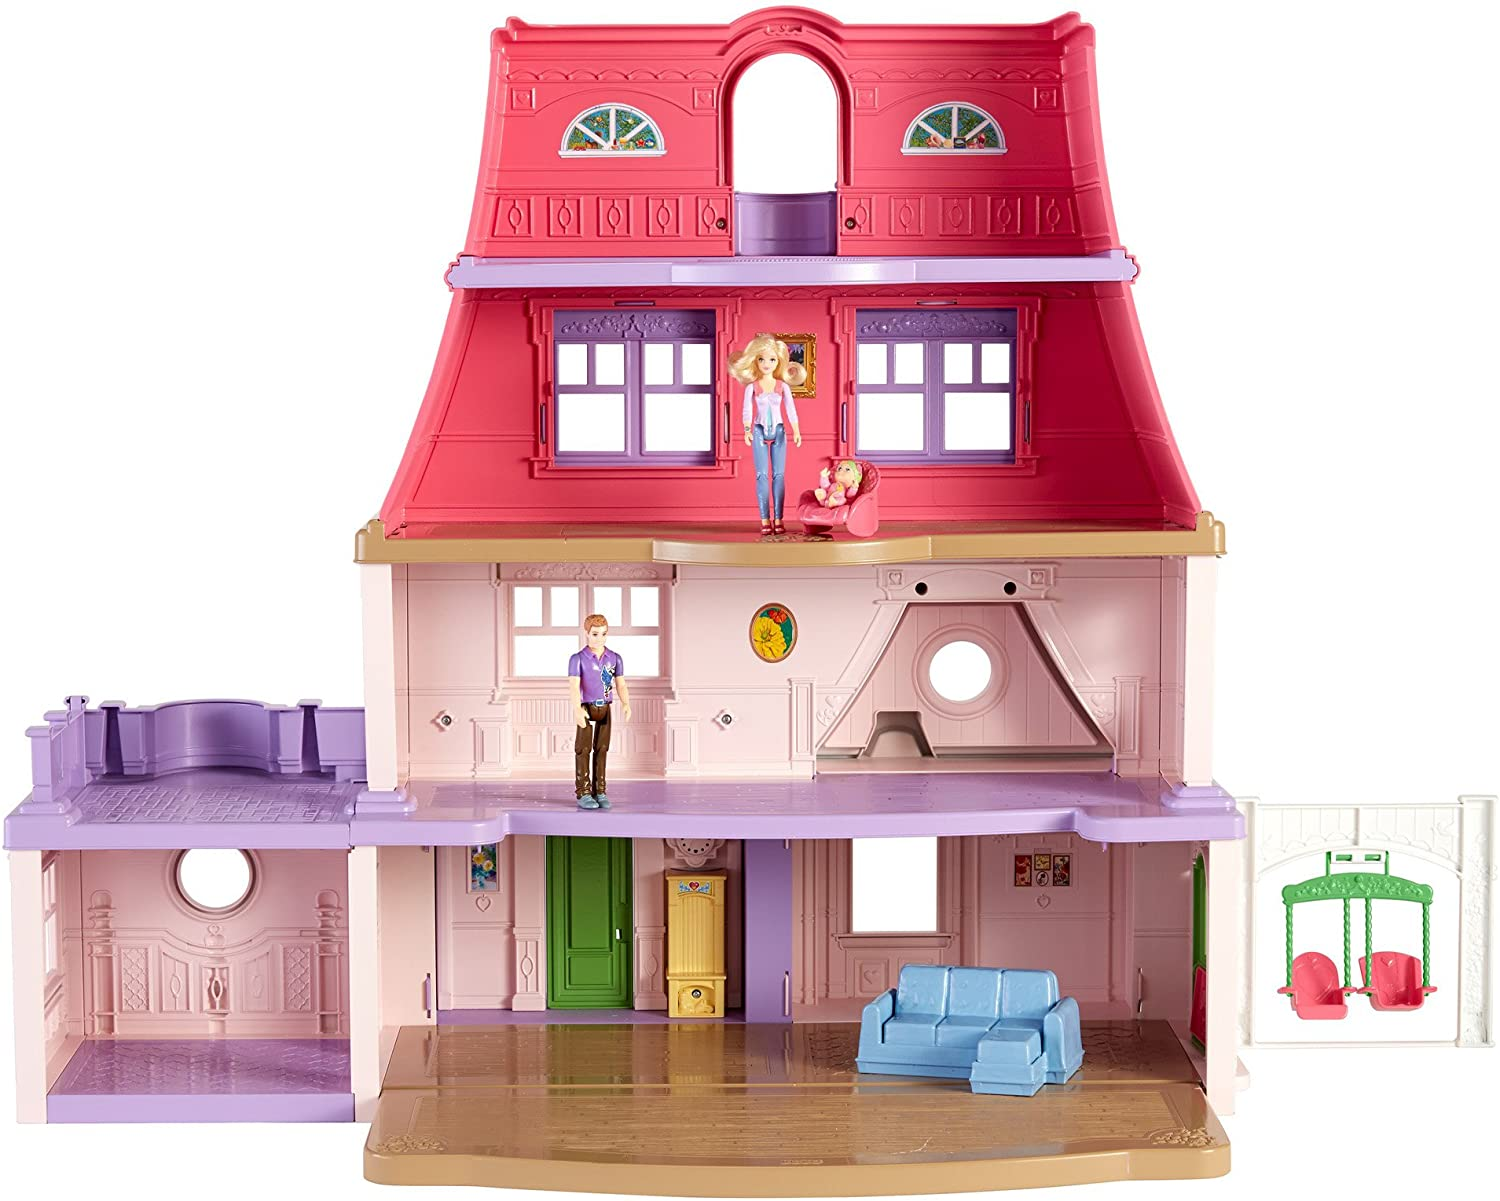 9 Best Fisher Price Dollhouse Reviews of 2021 18